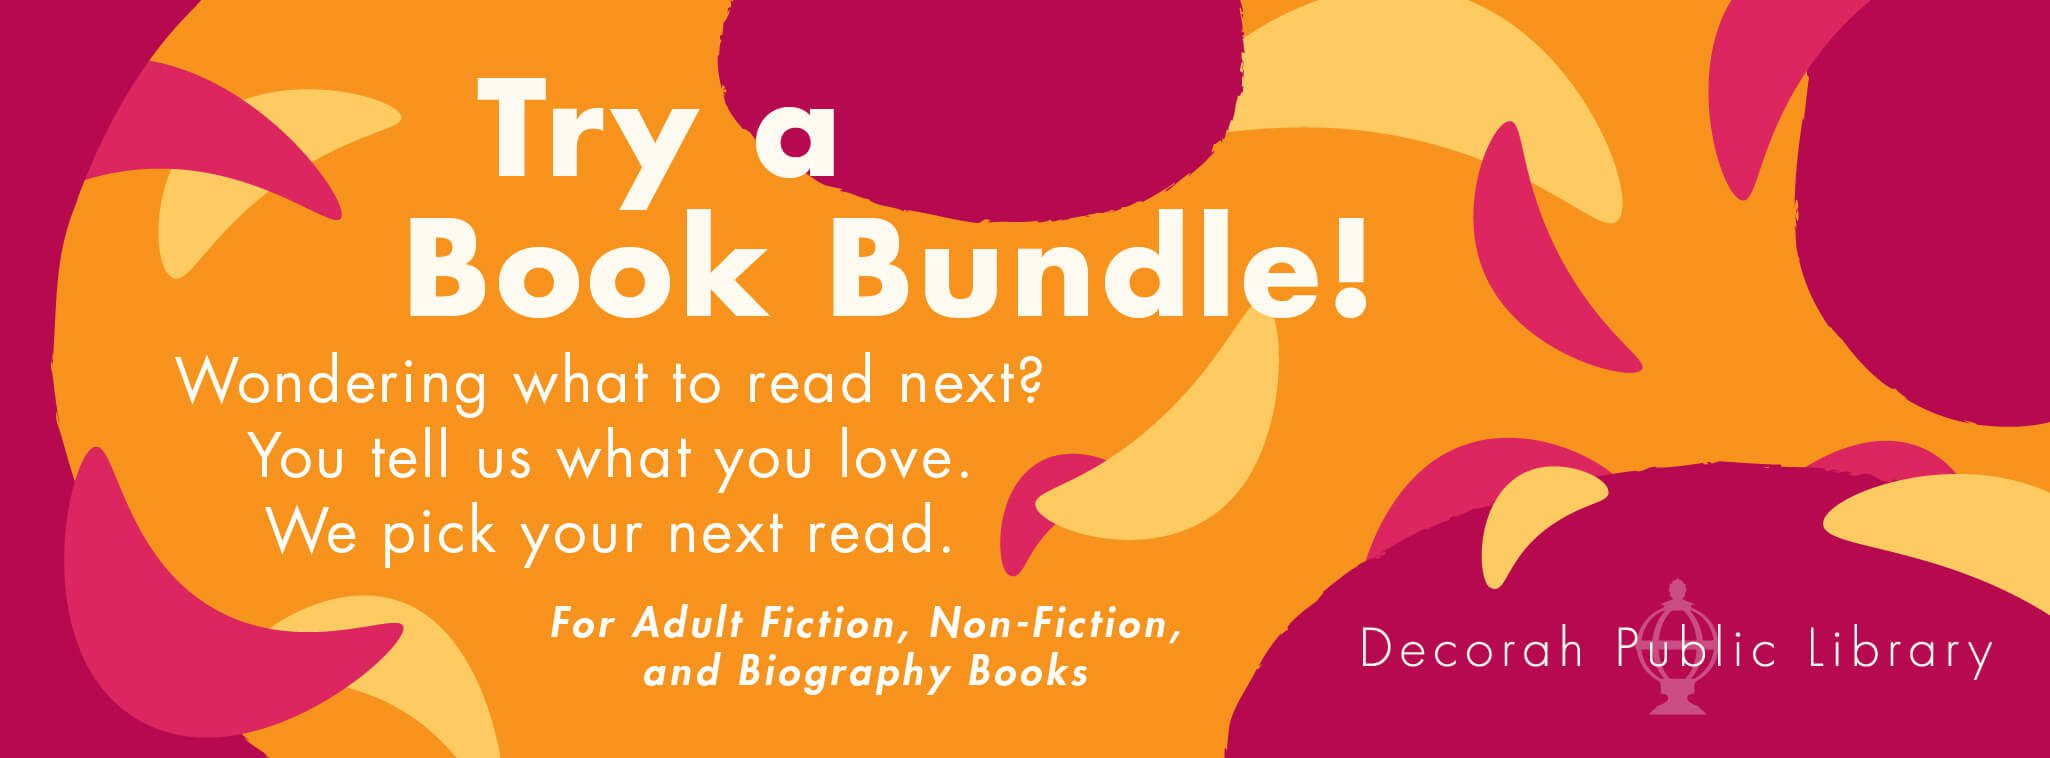 Book Bundles for Adults